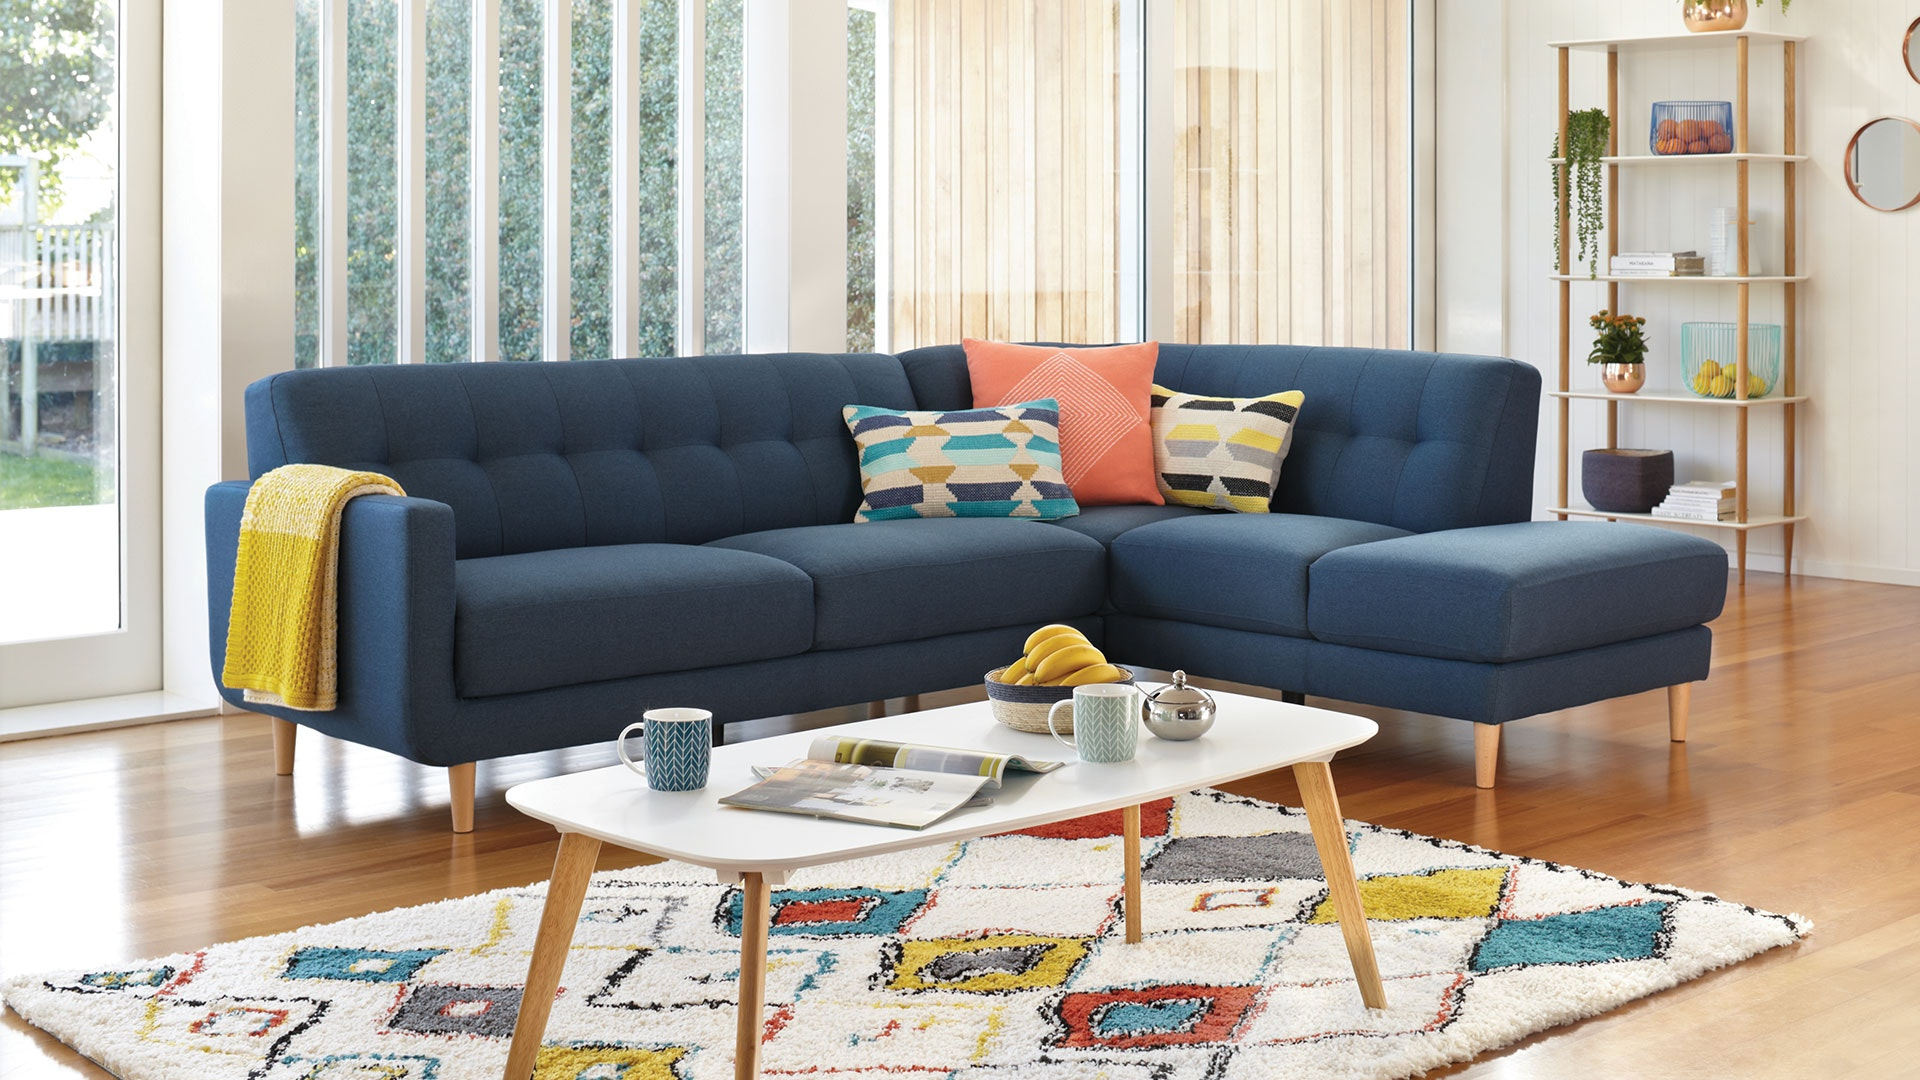 Hogan 3 Seater Fabric Sofa with Chaise